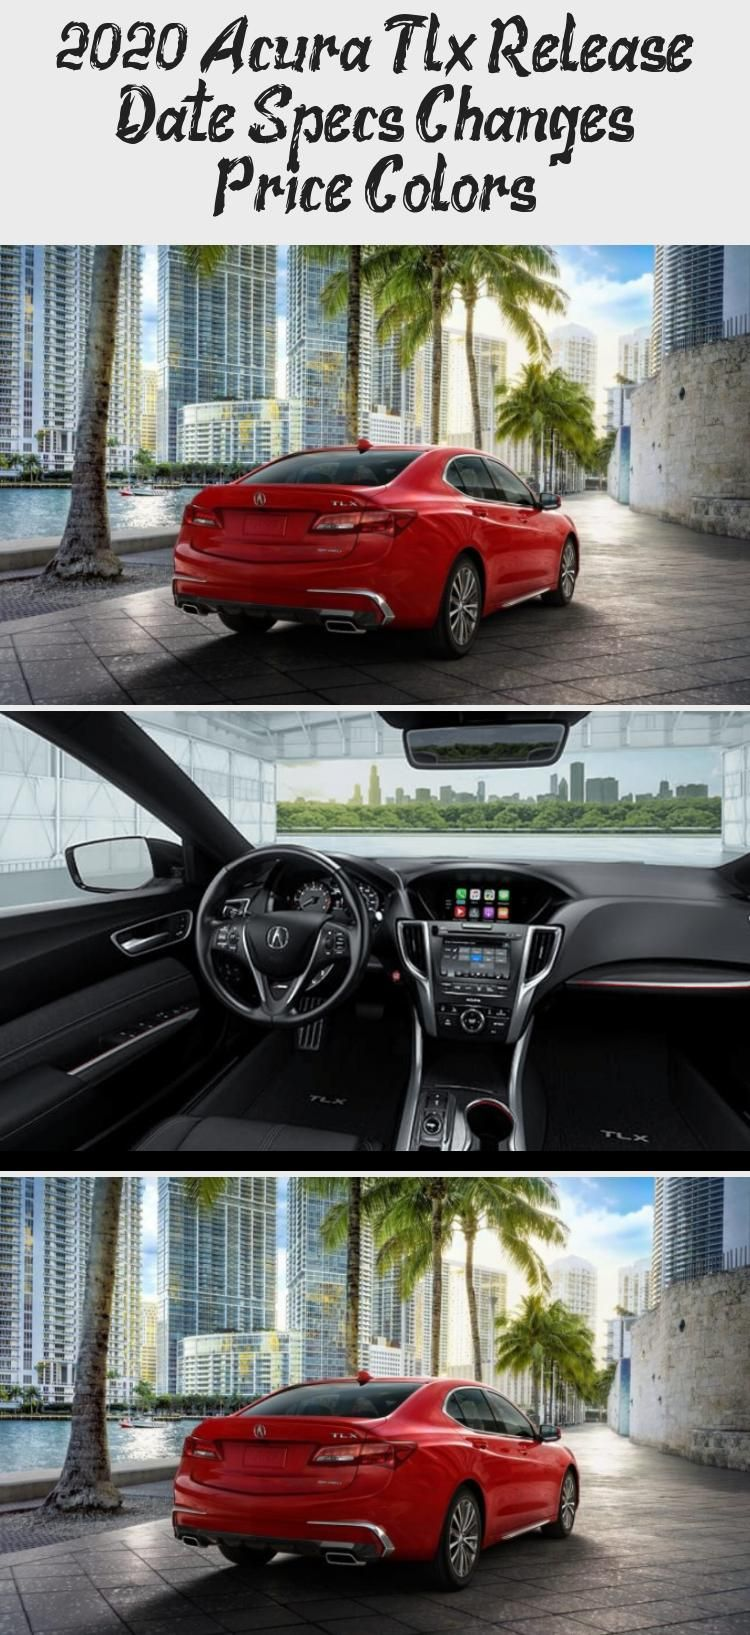 2020 Acura Tlx Release Date Specs Changes Price Colors Acuracsx Acuracars Acuratltypes Acuransx Acura2001 In 2020 Acura Tlx Acura Acura Csx